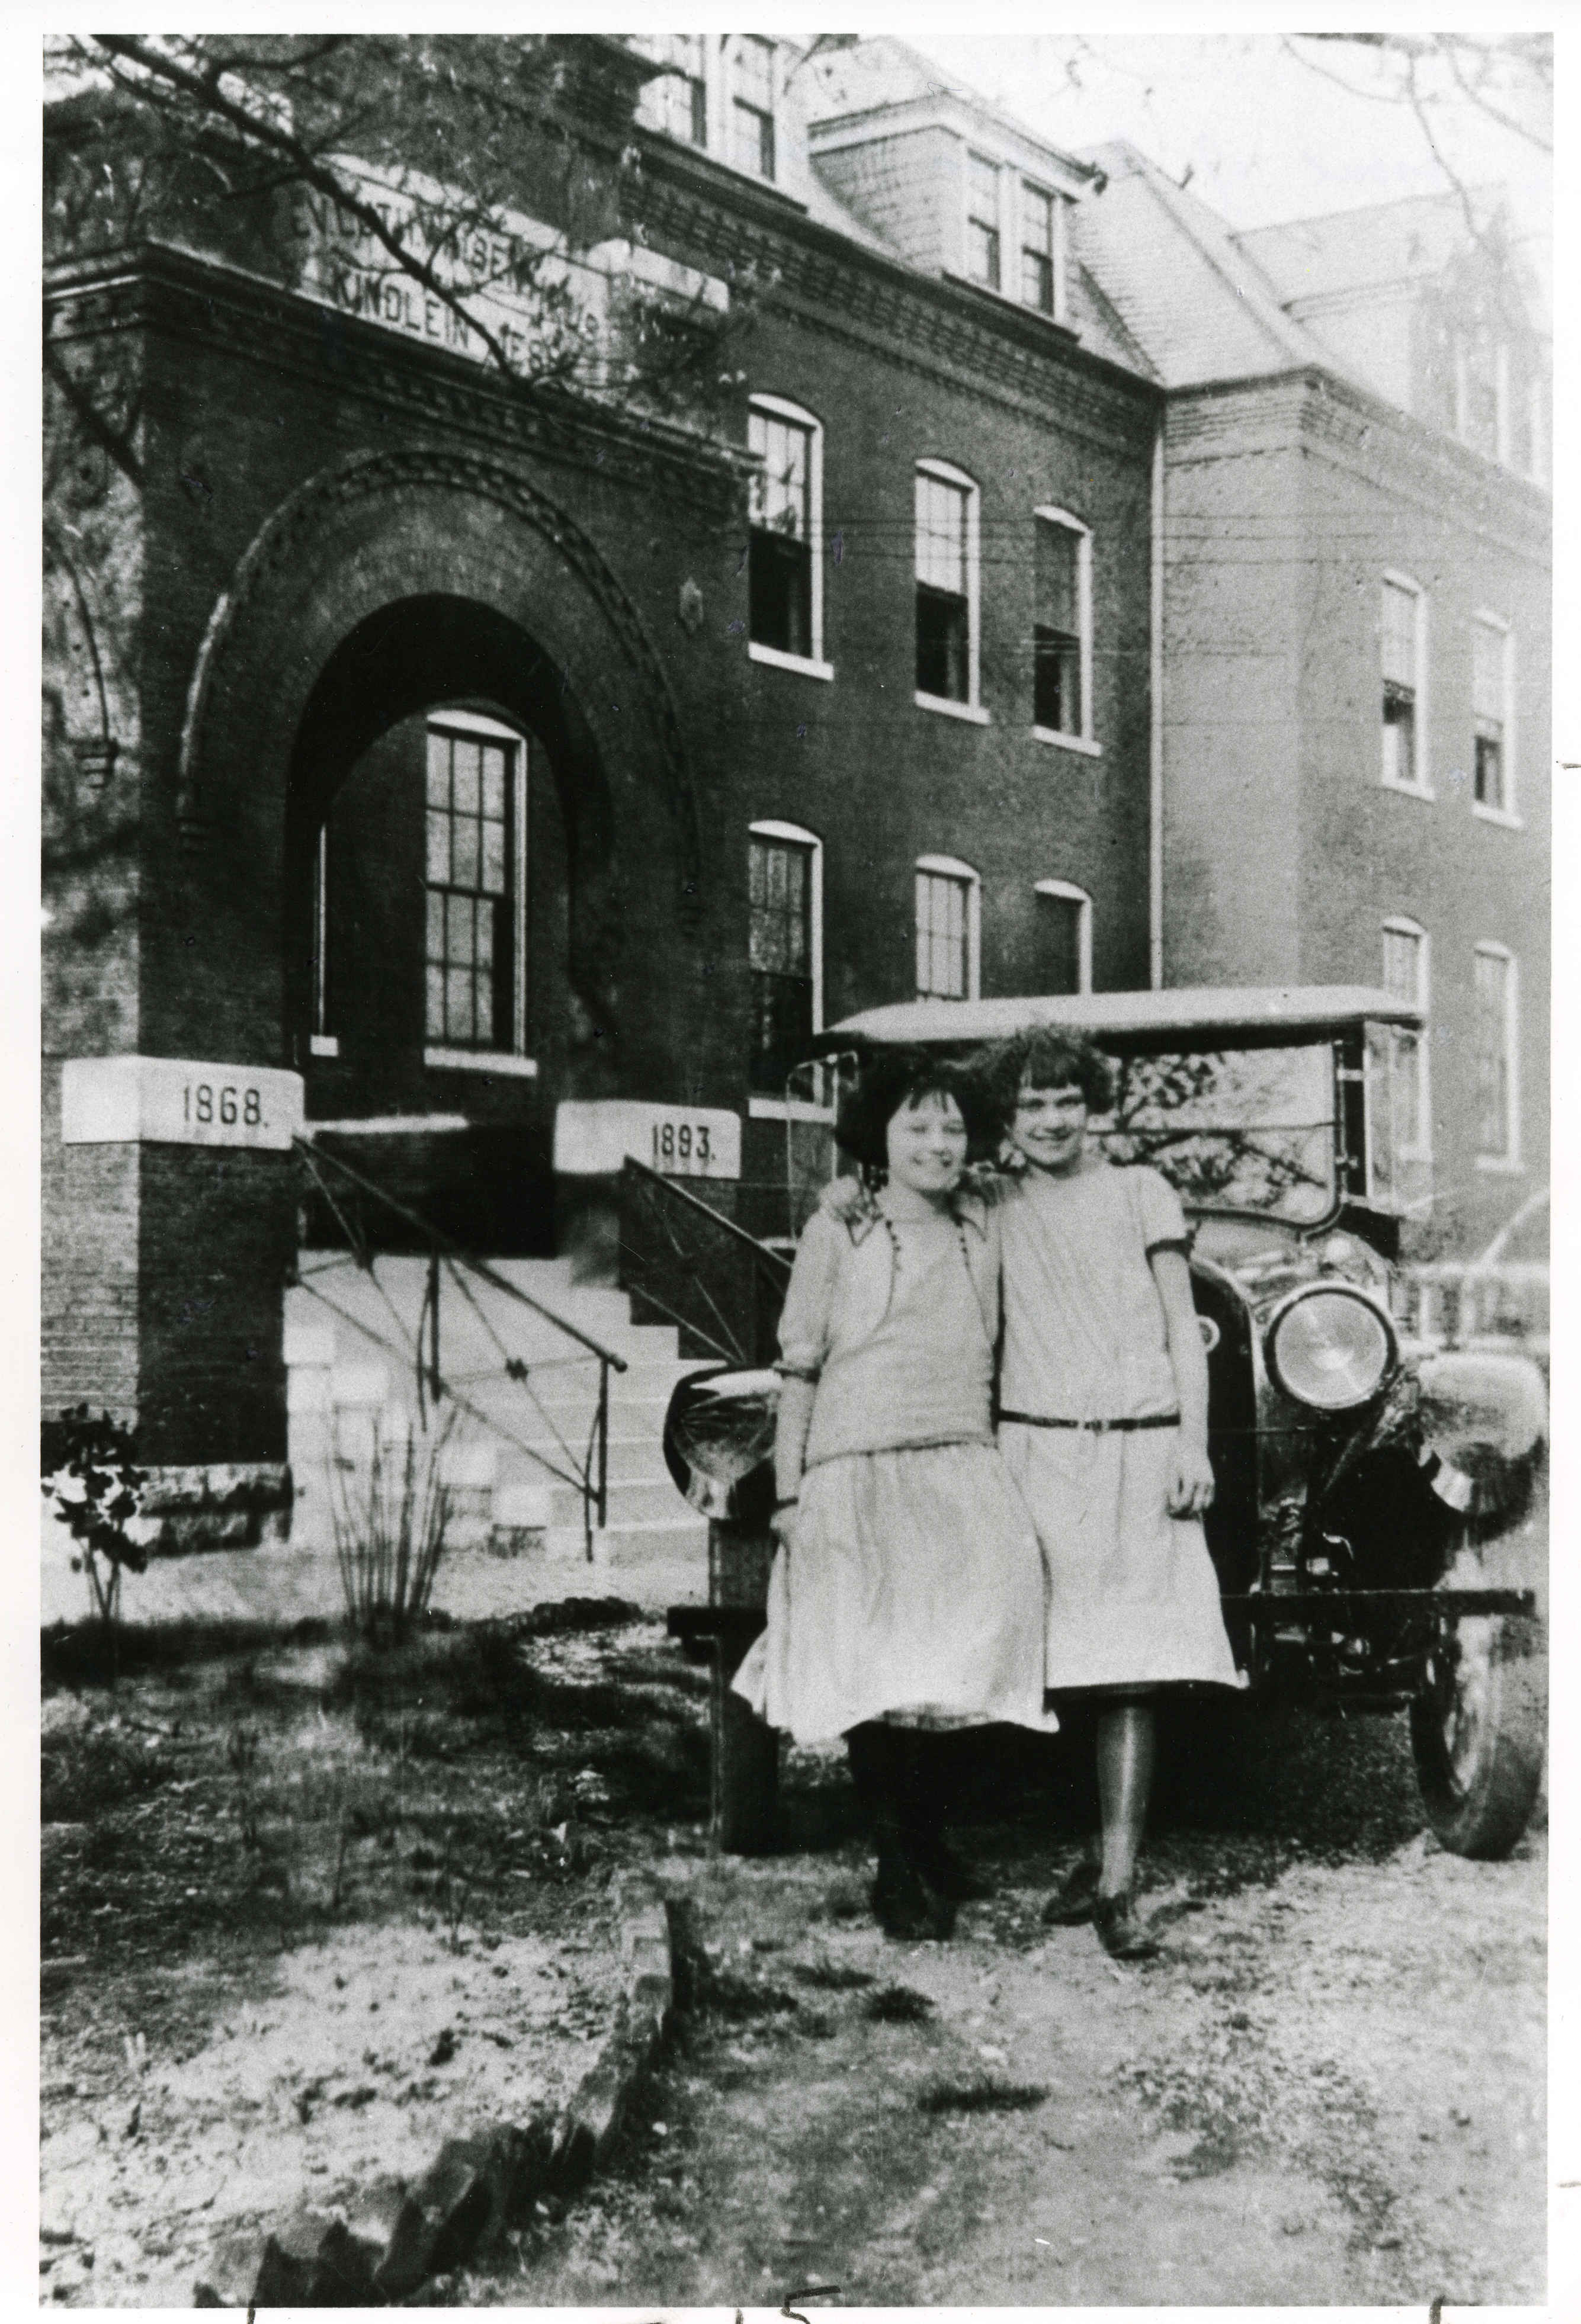 Ann Tomasovic and Friend in front of Orphan House